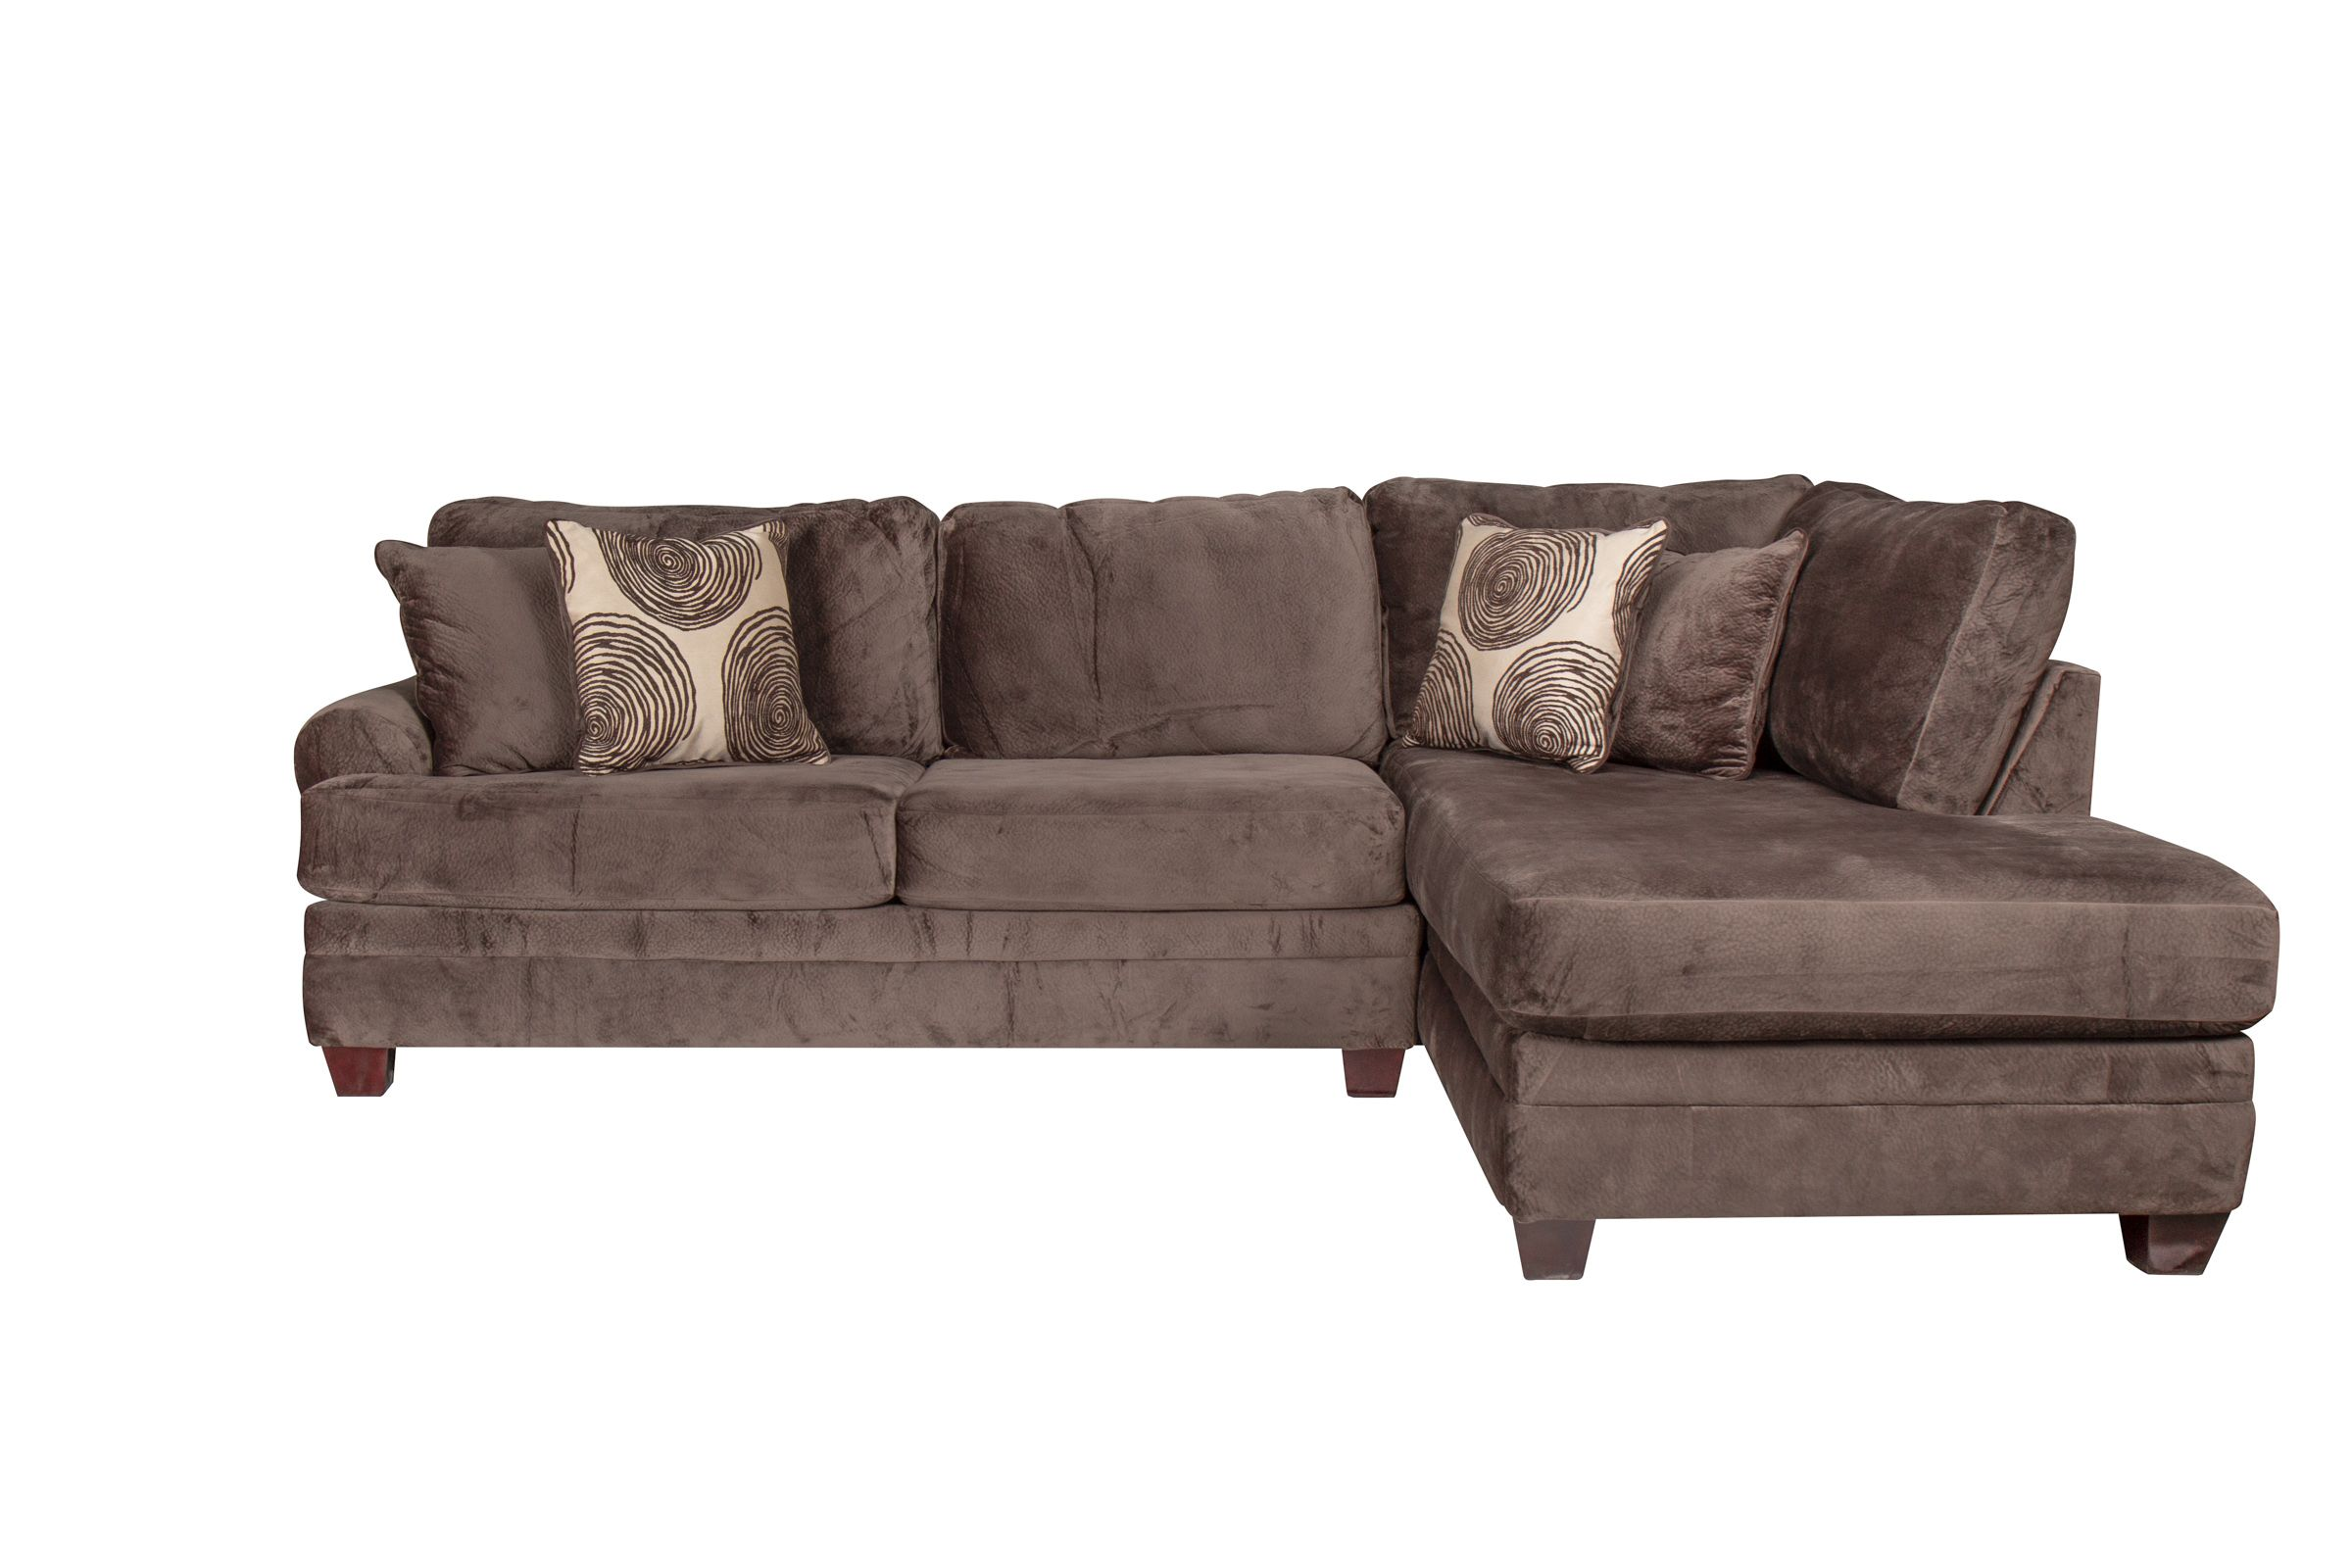 channing microfiber sectional with chaise on the right